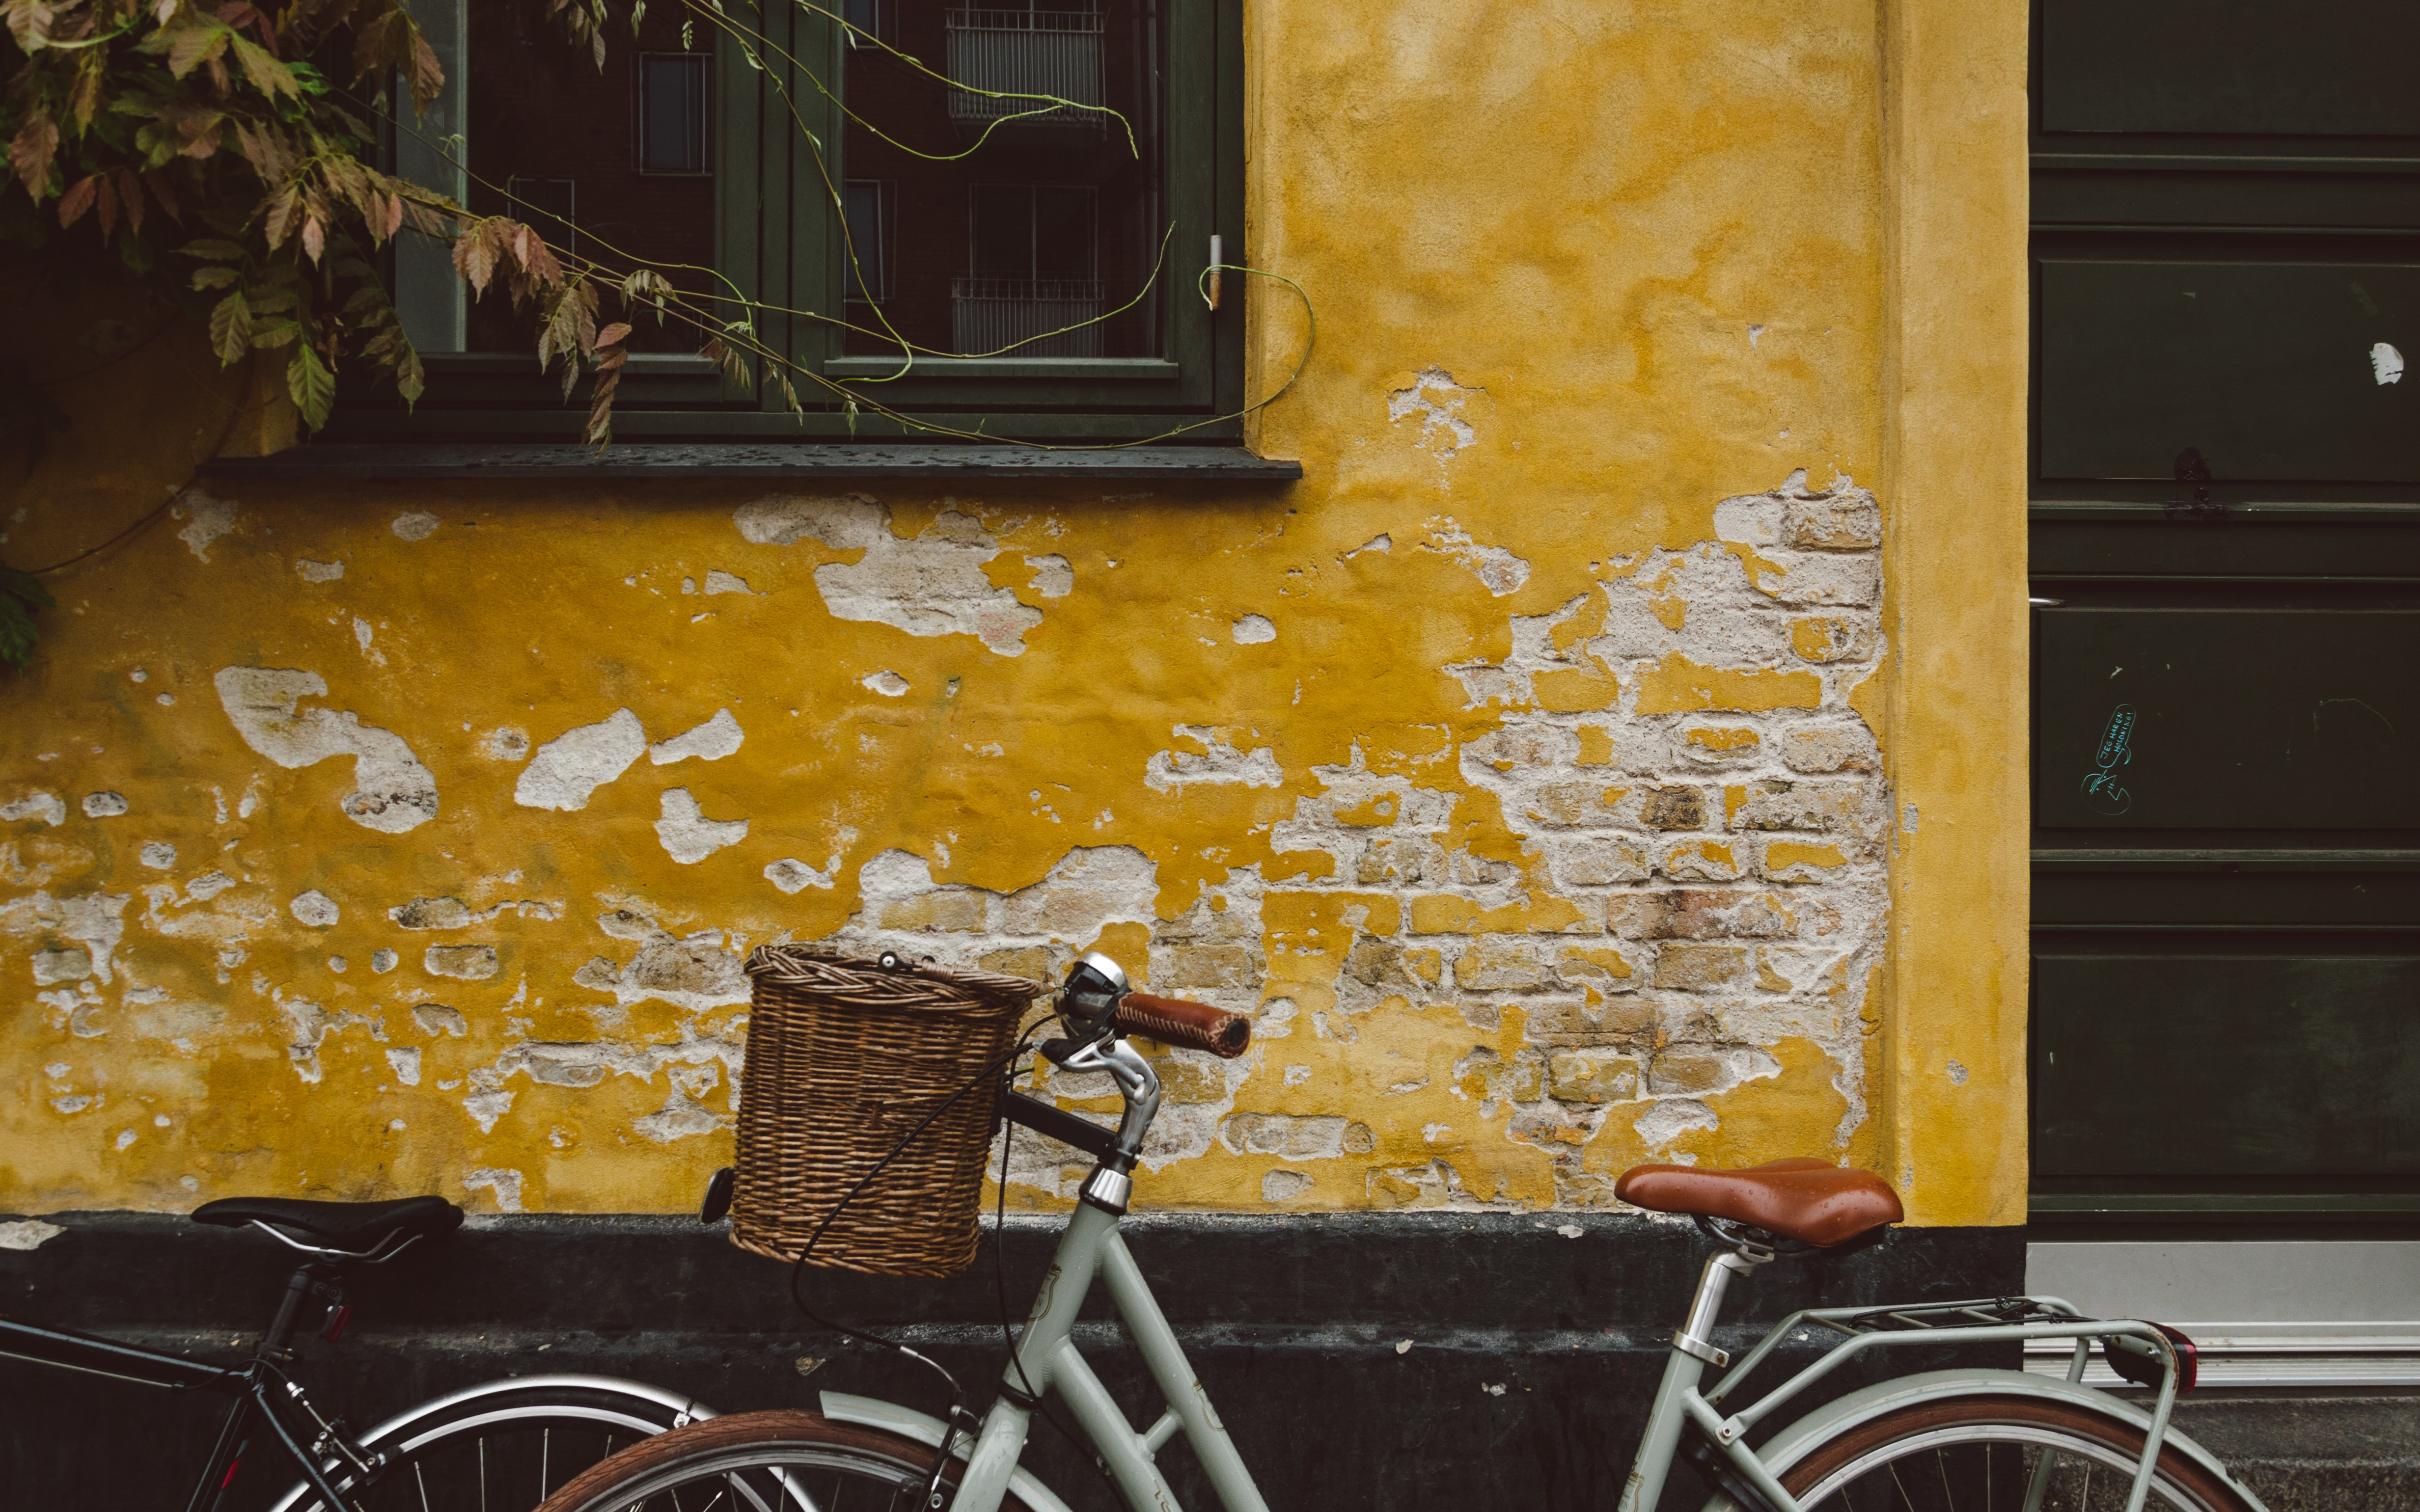 gray bicycle leaning on brown wall